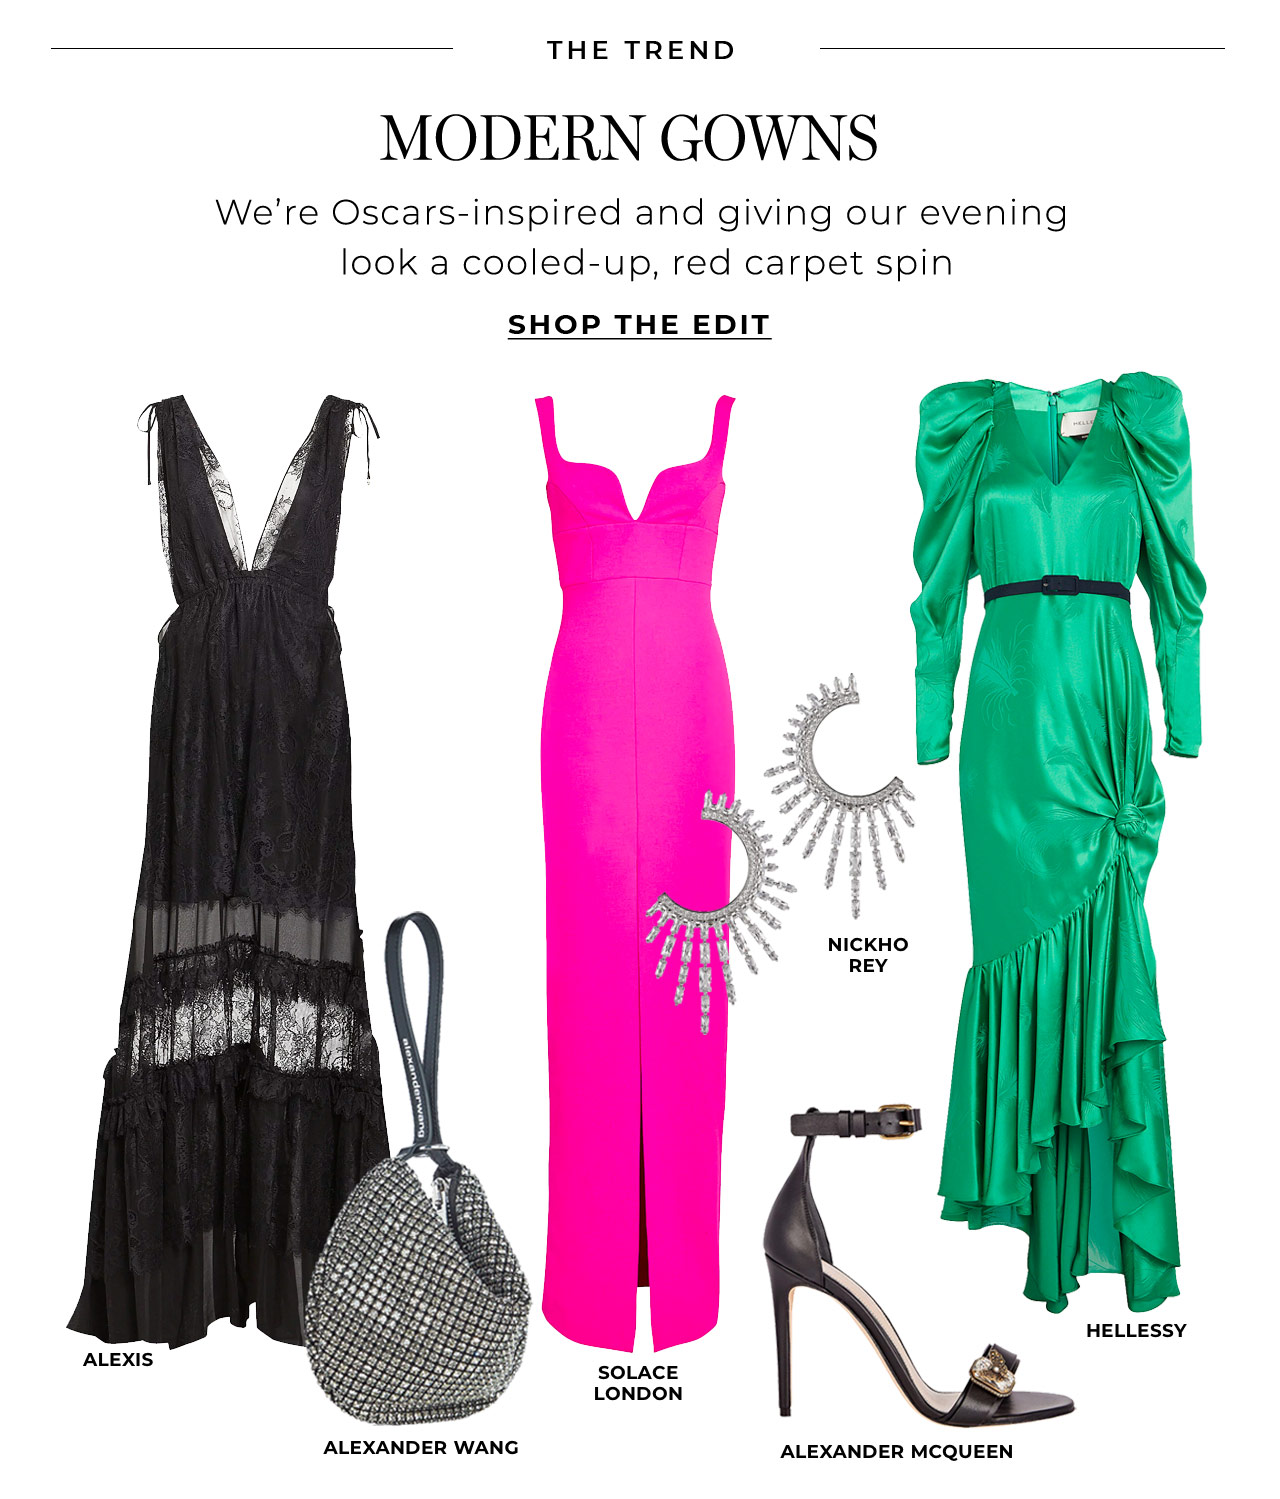 We're Oscars-inspired and giving our gowns a cooled-up, red carpet spin